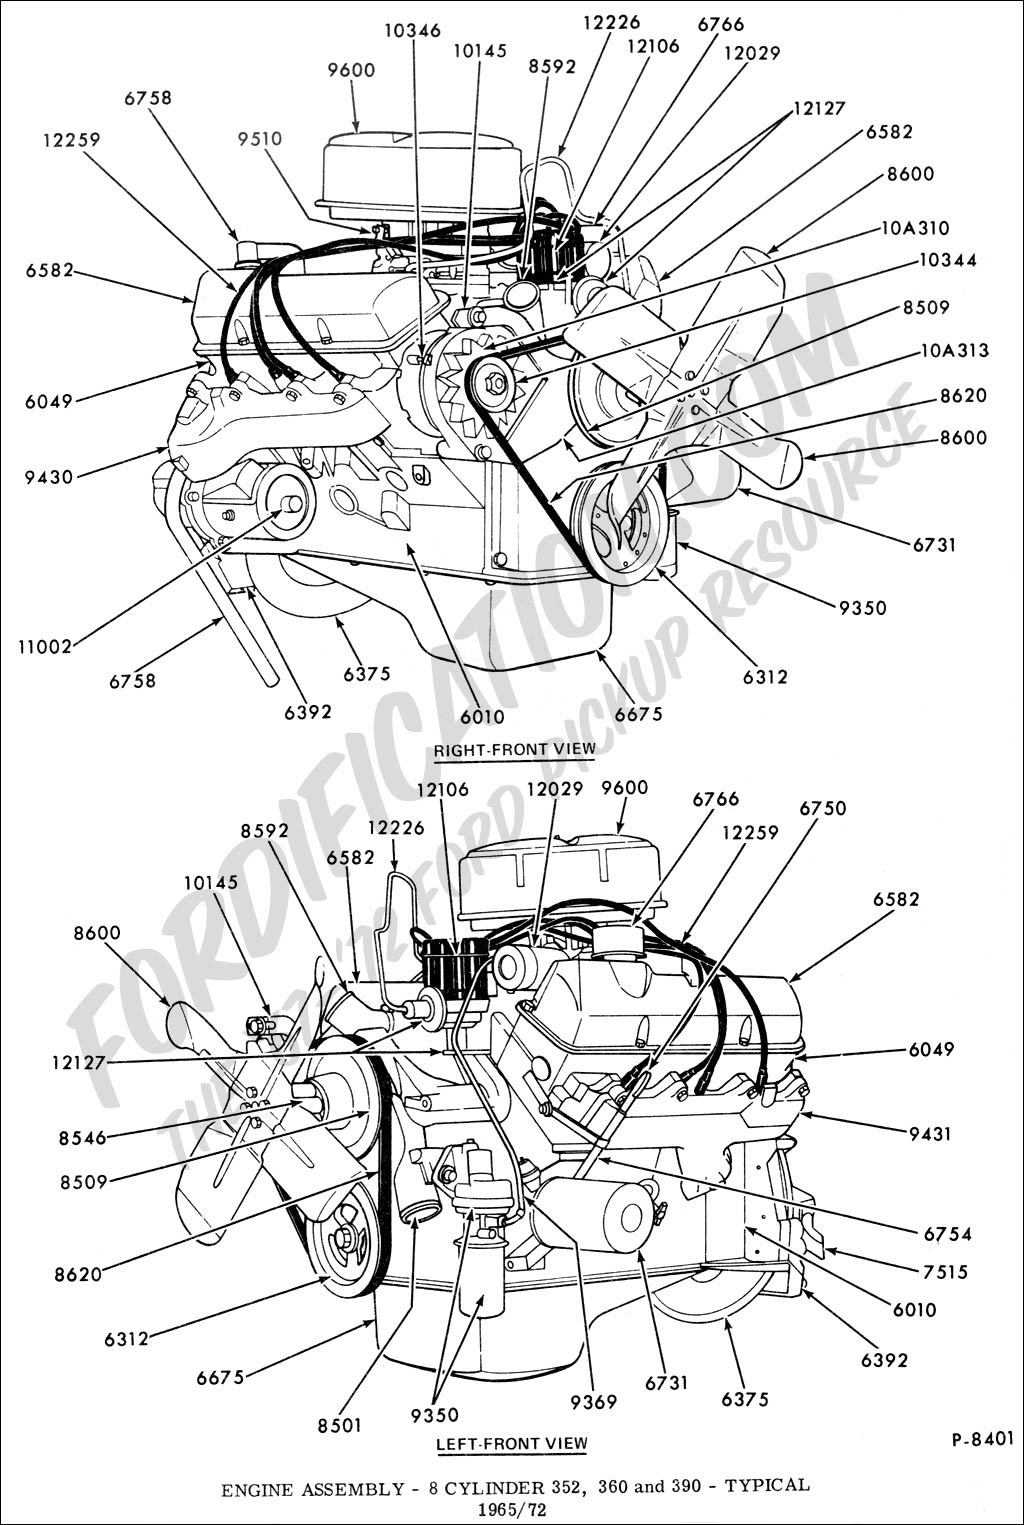 1969 ford 302 engine diagram  1969  get free image about